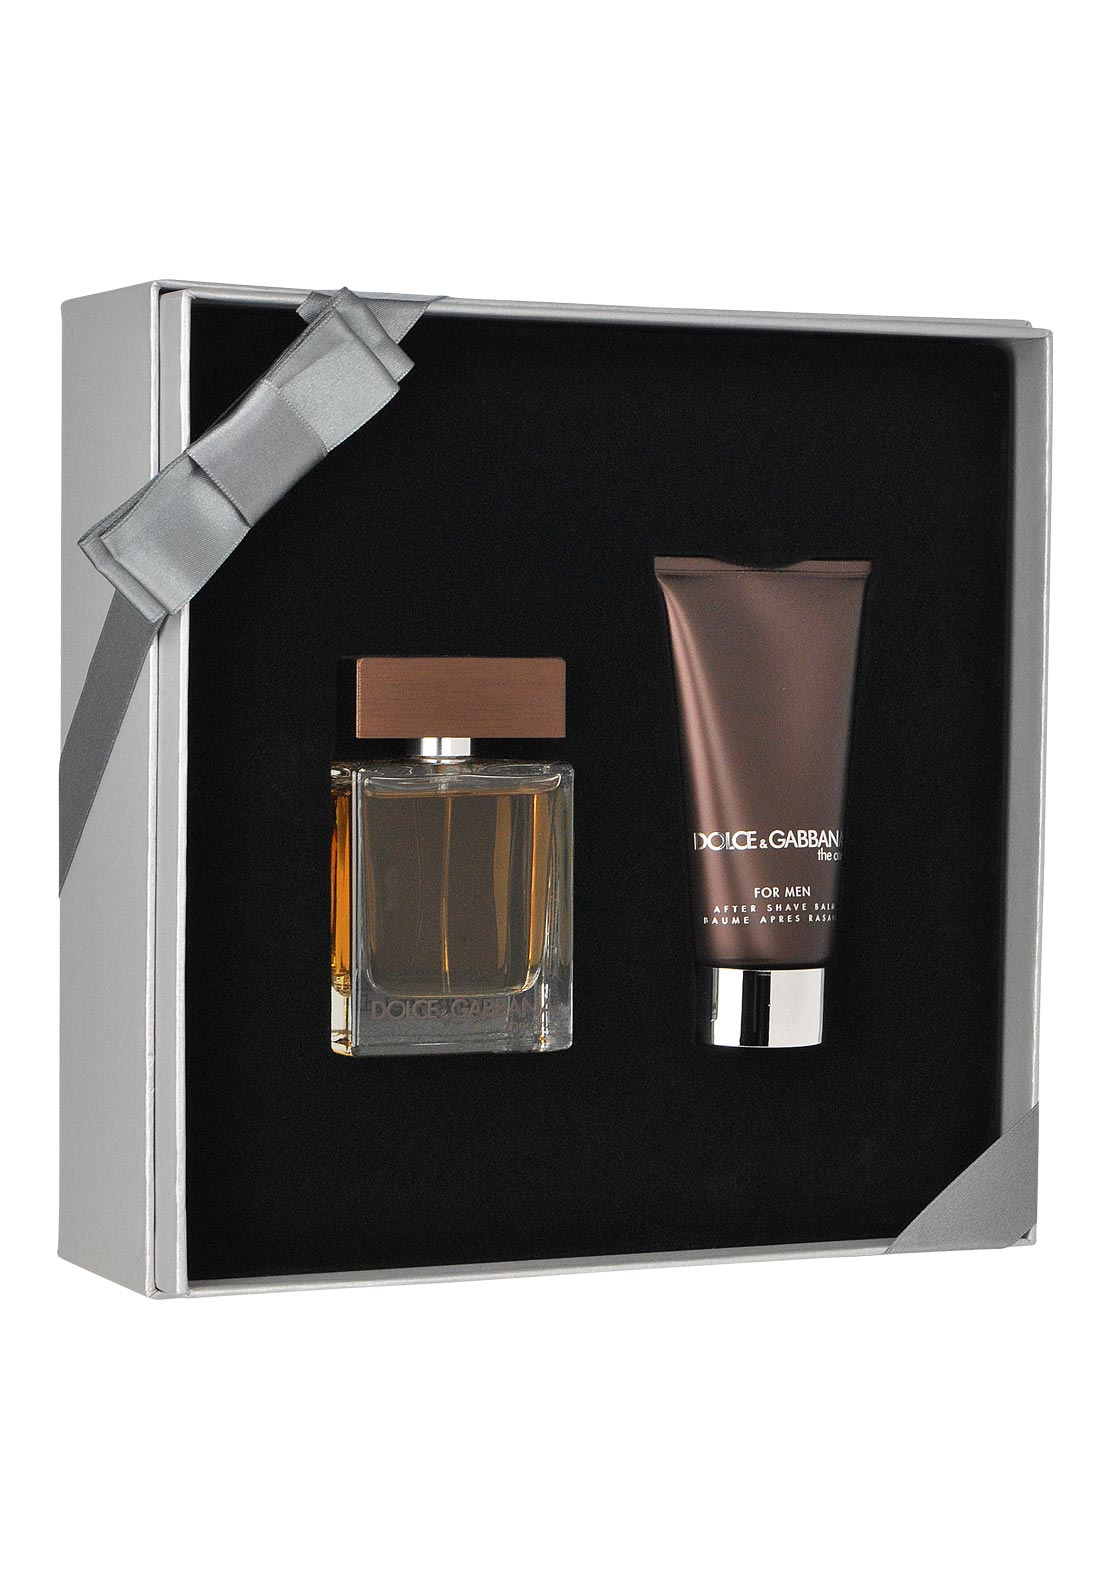 Dolce & Gabbana The One Eau De Toilette Gift Set for Men, 50ml